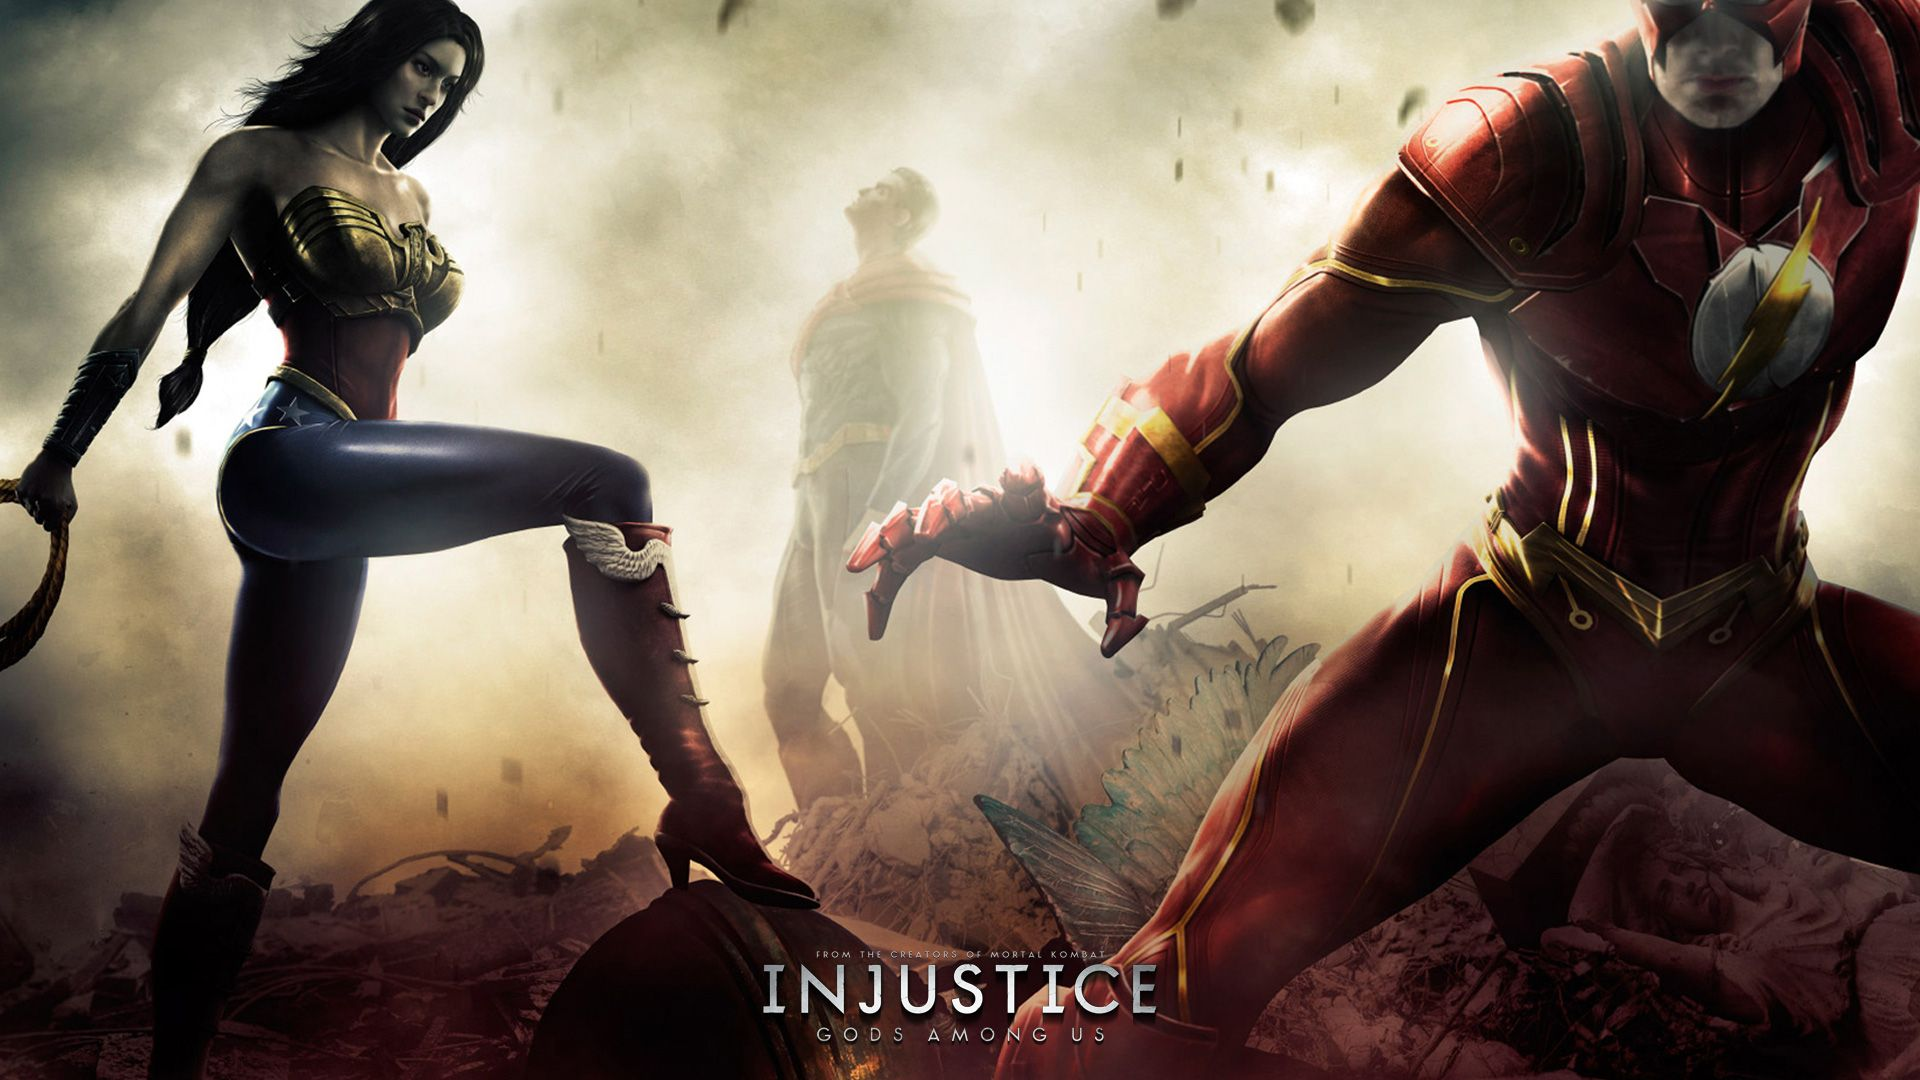 Pin By Wallpaper On Injustice Wonder Woman Injustice Movie Wallpapers